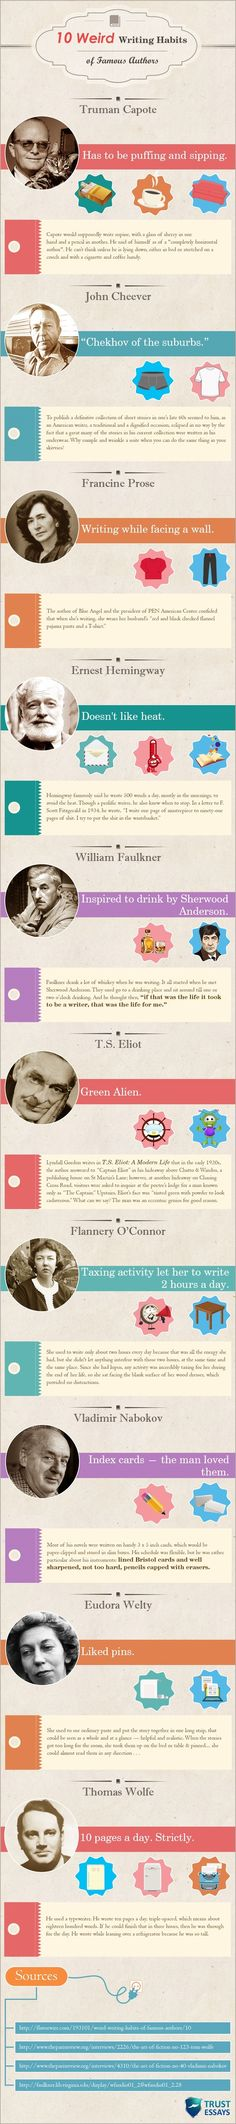 The Weird Writing Practices of Authors: INFOGRAPHIC